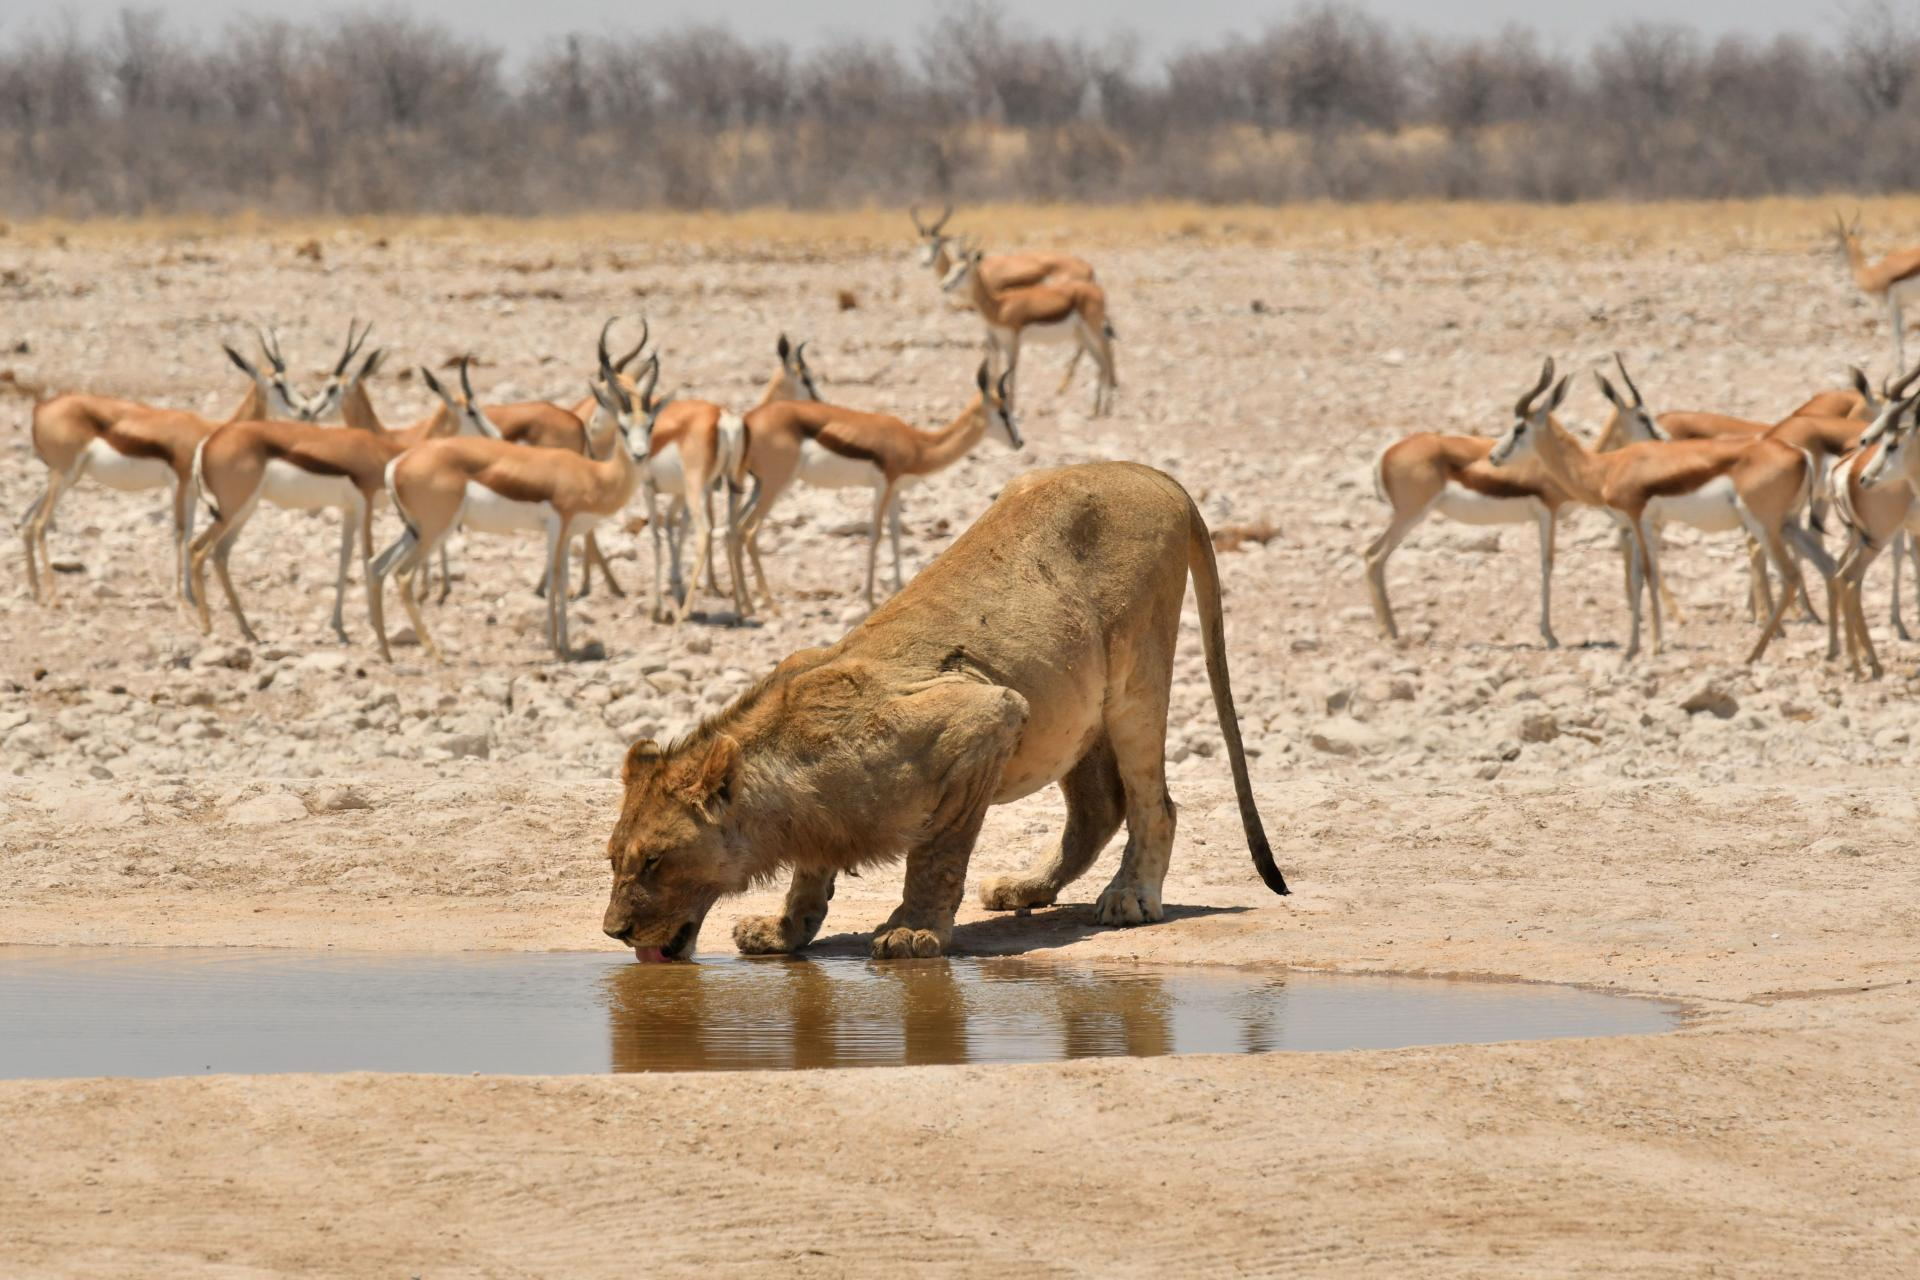 Lions and gazelles